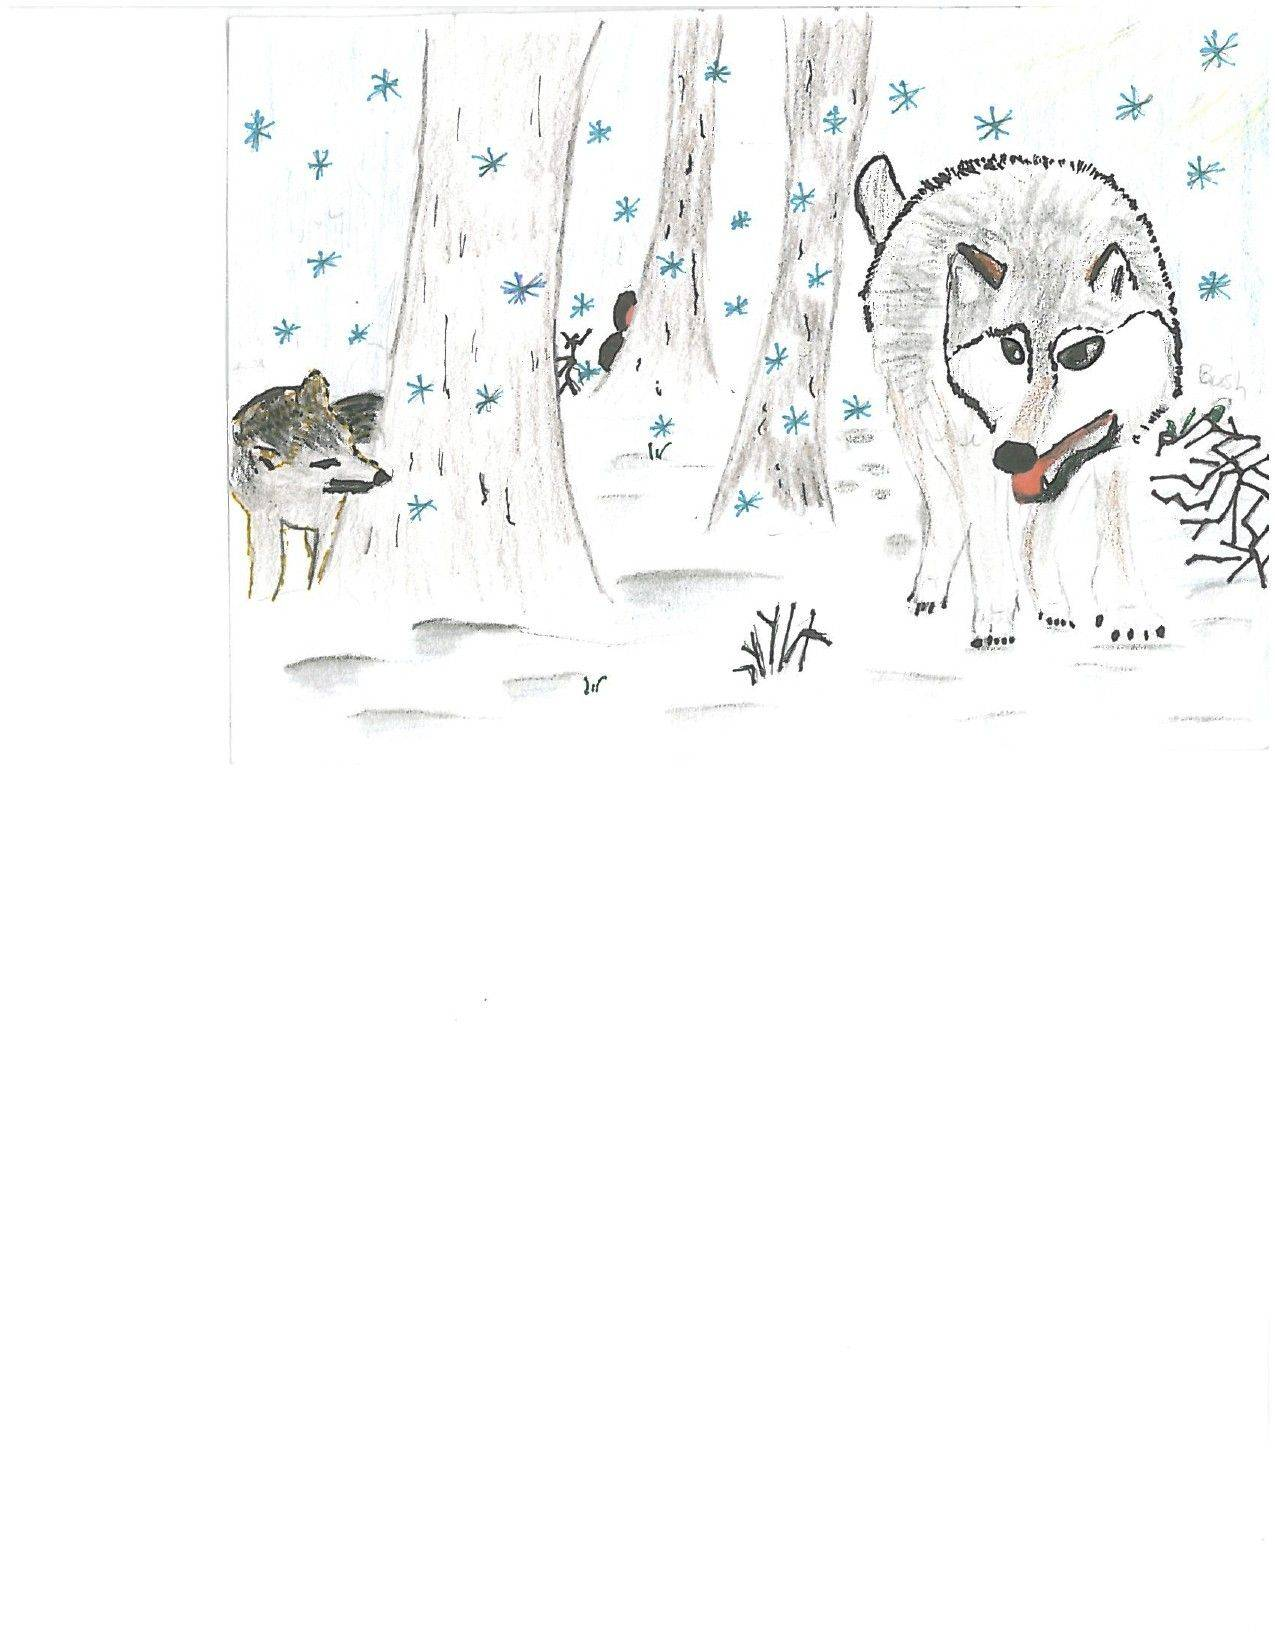 The winning Winter Card Design Contest entry by Ashton Smith.